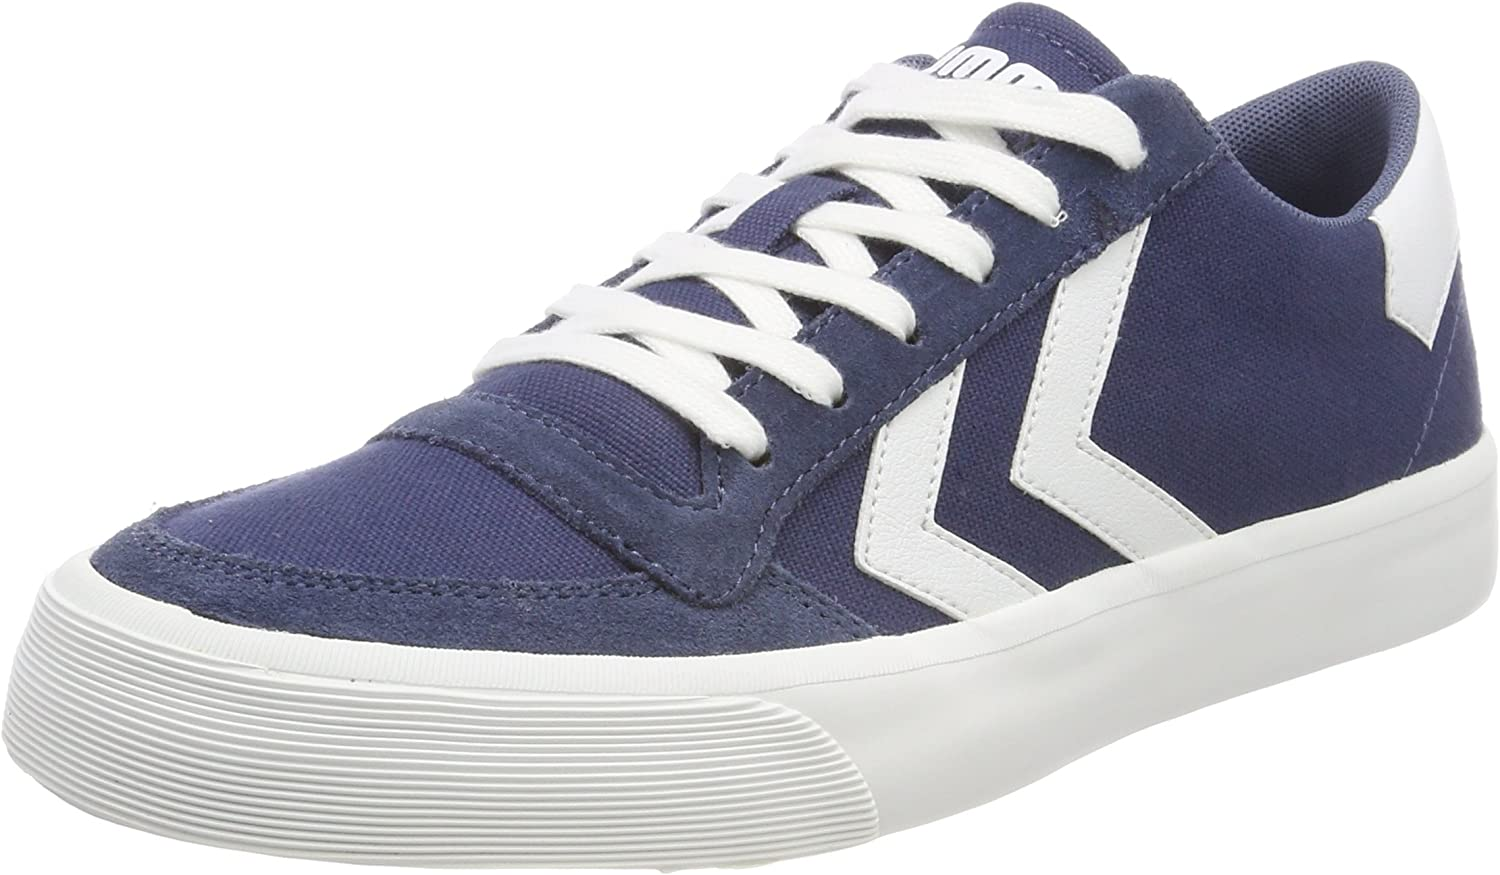 Hummel Unisex Adults' Stadil RMX Low Trainers, Grey White